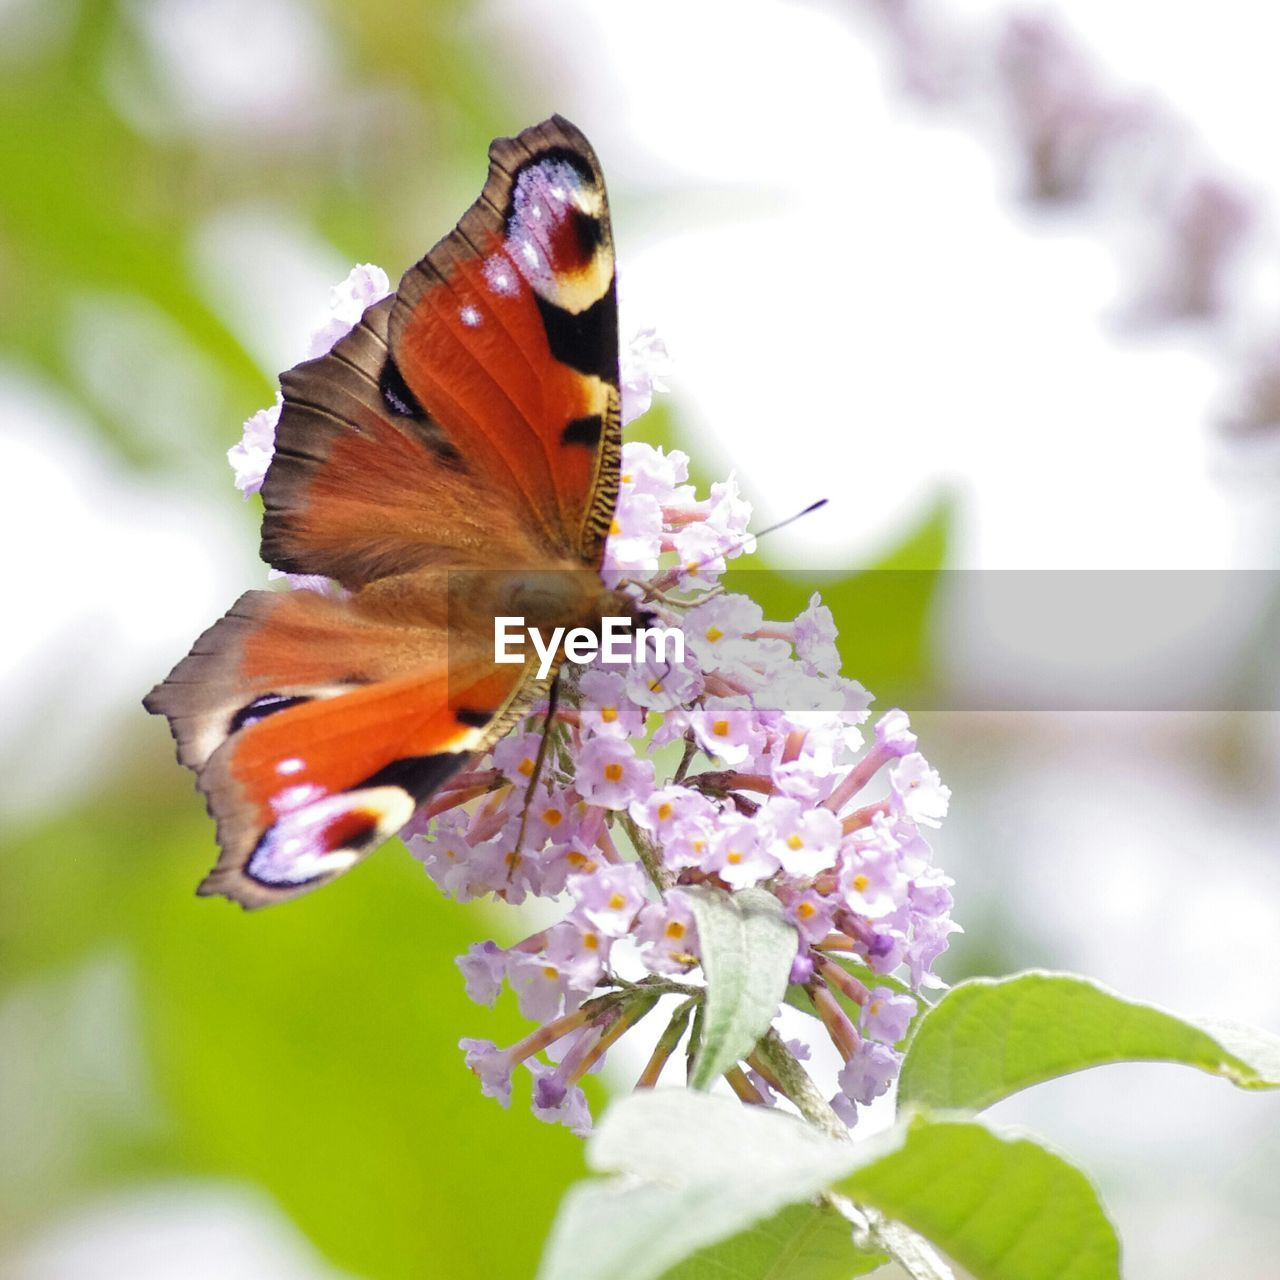 flower, one animal, fragility, animals in the wild, beauty in nature, animal themes, nature, day, freshness, close-up, insect, no people, petal, butterfly - insect, focus on foreground, growth, outdoors, animal wildlife, pollination, flower head